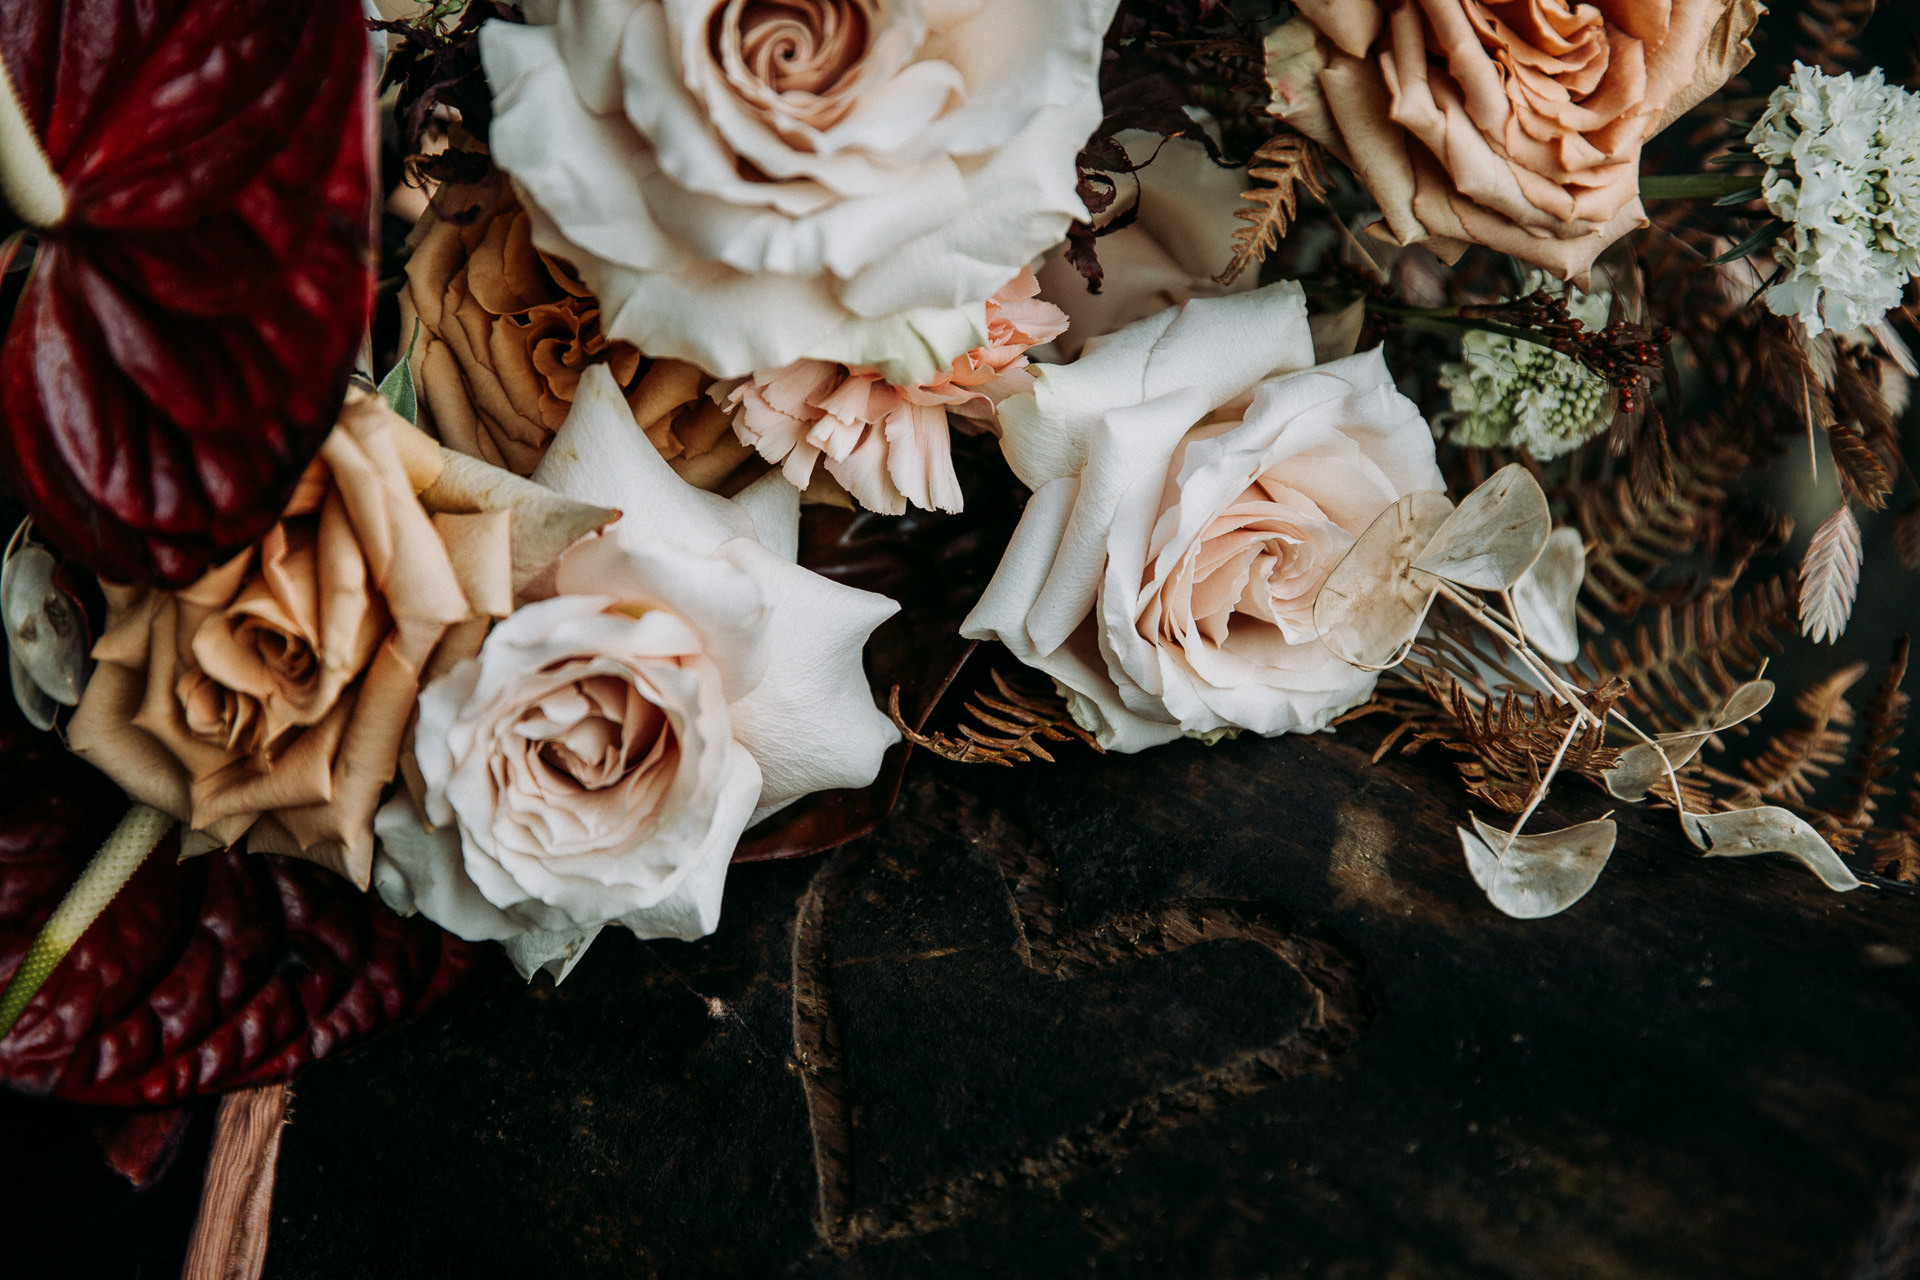 Nadine-Hansen-Photography-Bouquet-1 copy.jpg